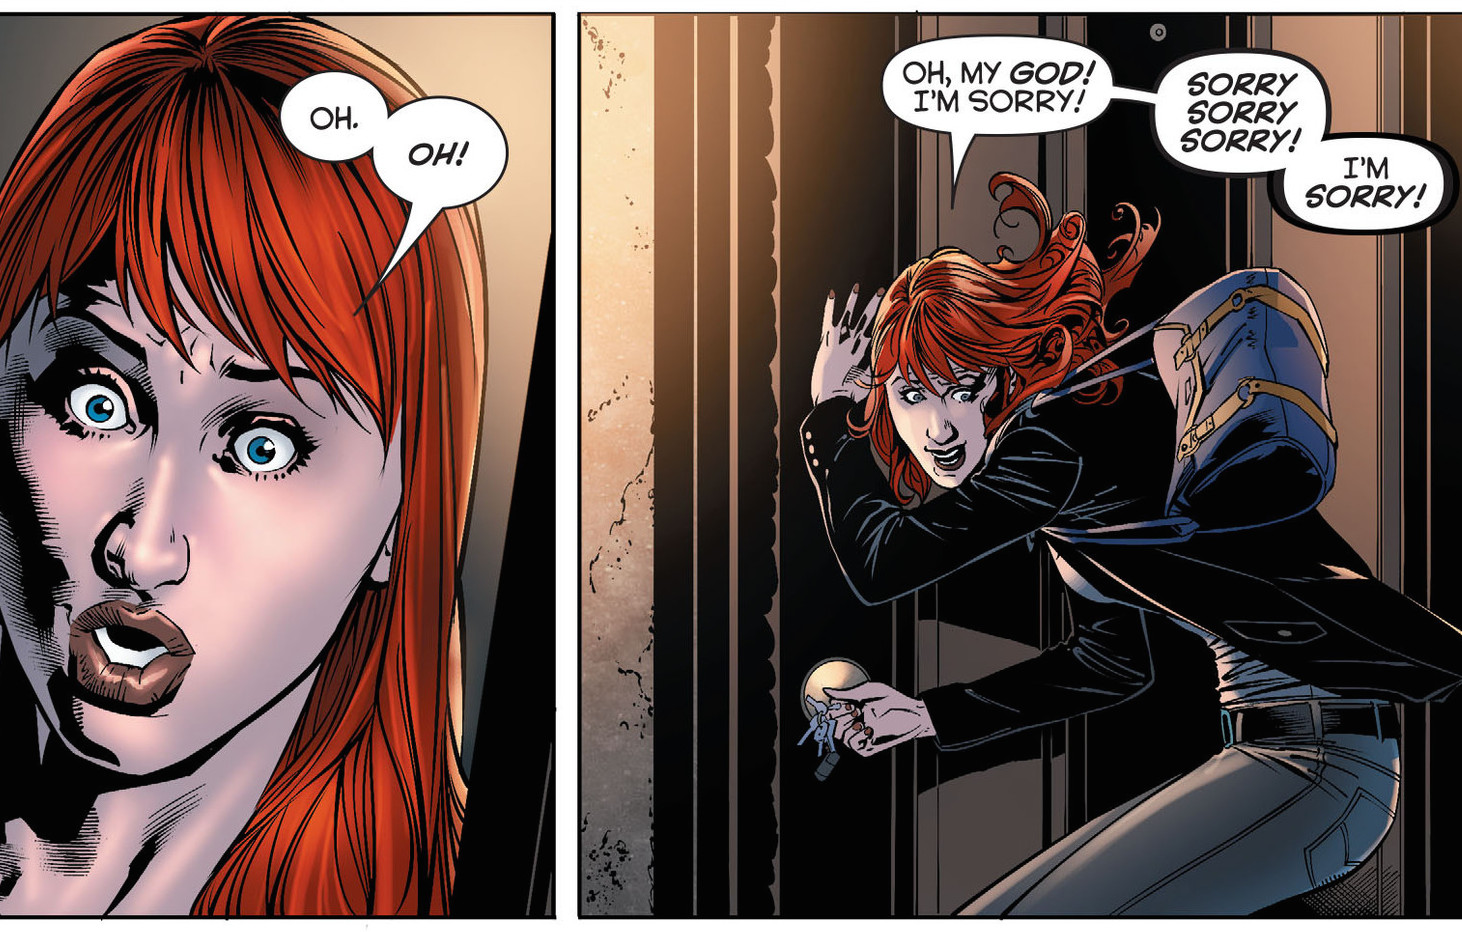 Batgirl #32. You SHOULD be sorry!